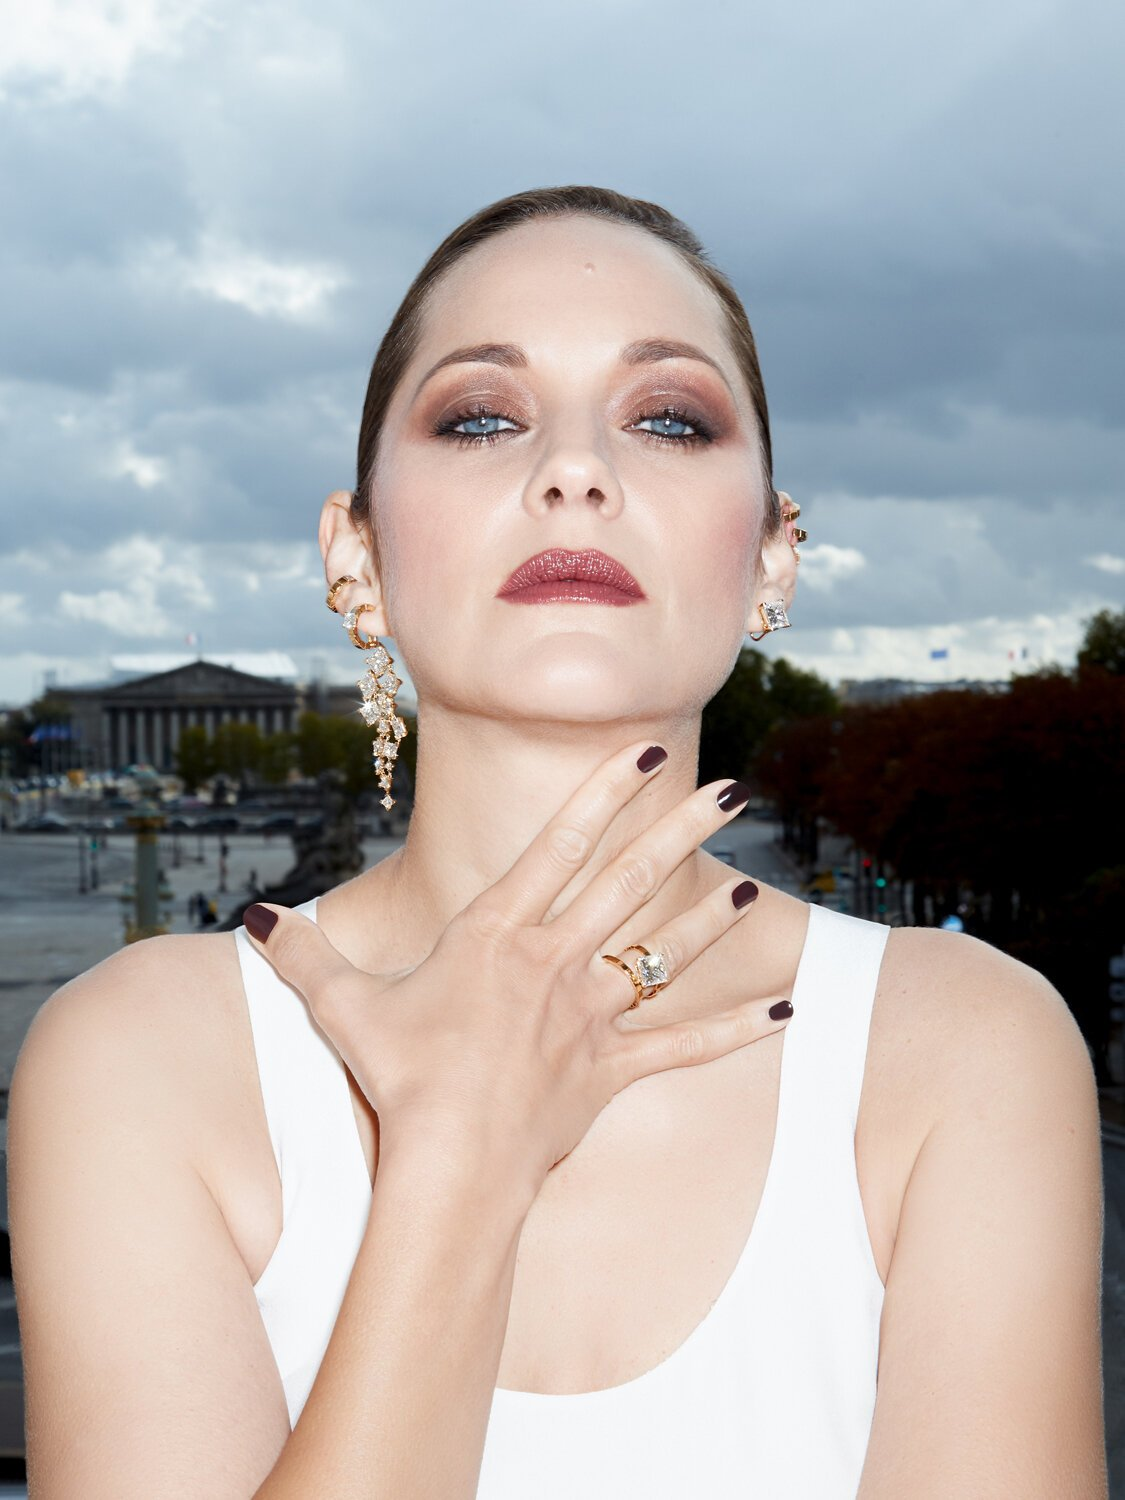 Marion Cotillard for Harper's Bazaar Russia November 2020. Photographed by Claire Rothstein.